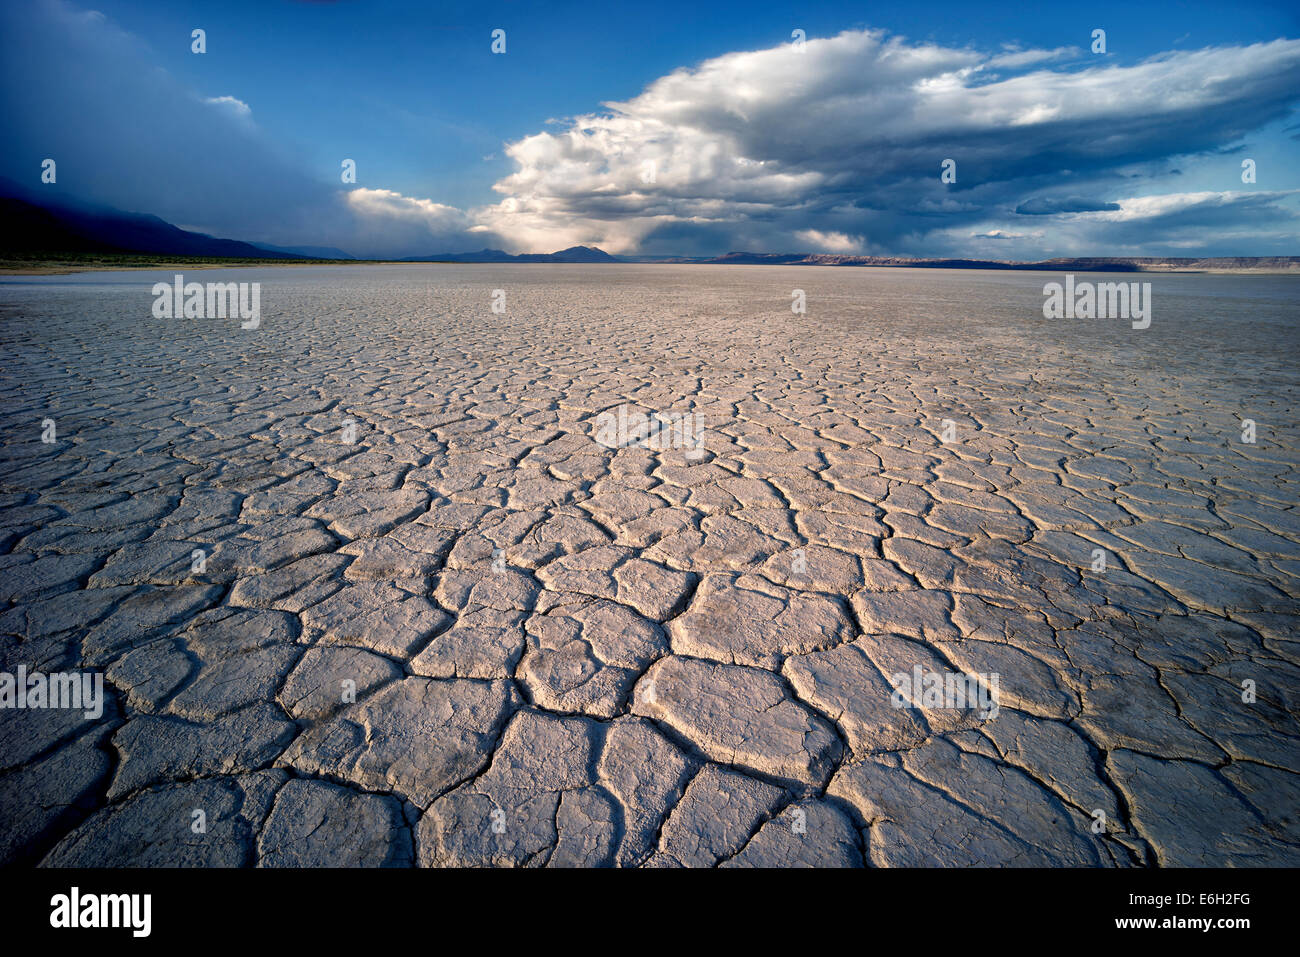 Alvord Desert and clouds Harney County, Oregon. - Stock Image